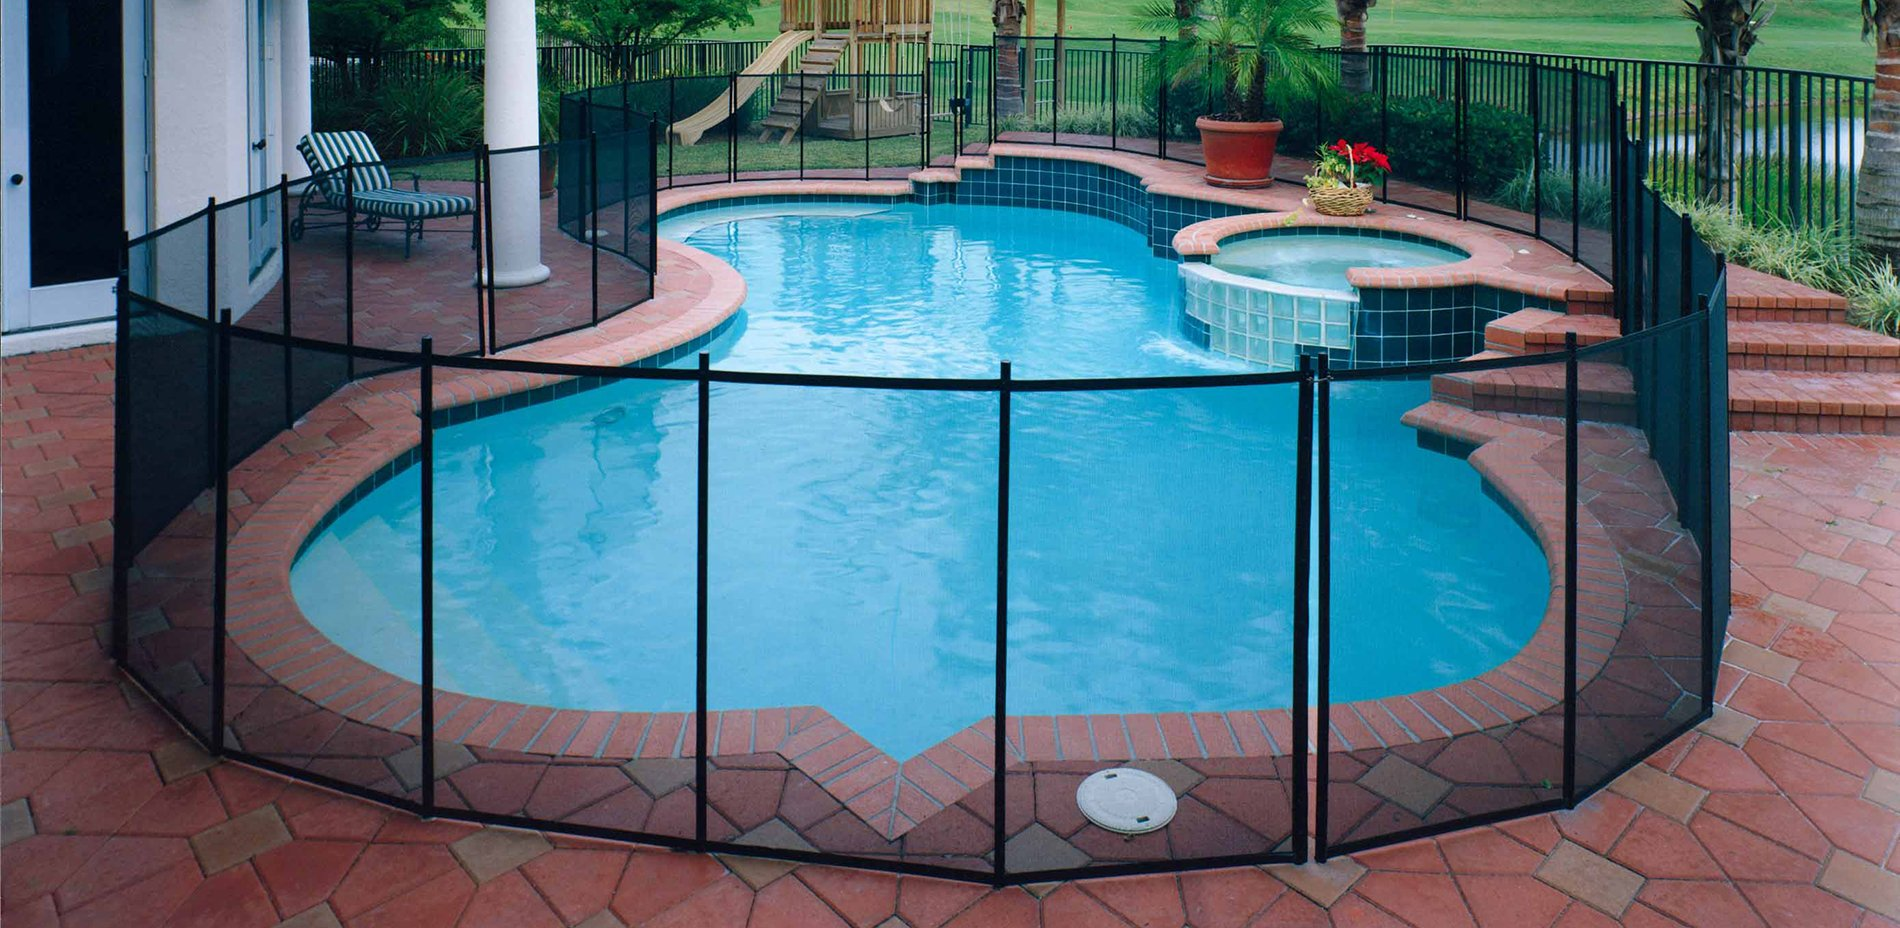 Pool Fence Coupon 25 Discount Life Saver Pool Fence Systems